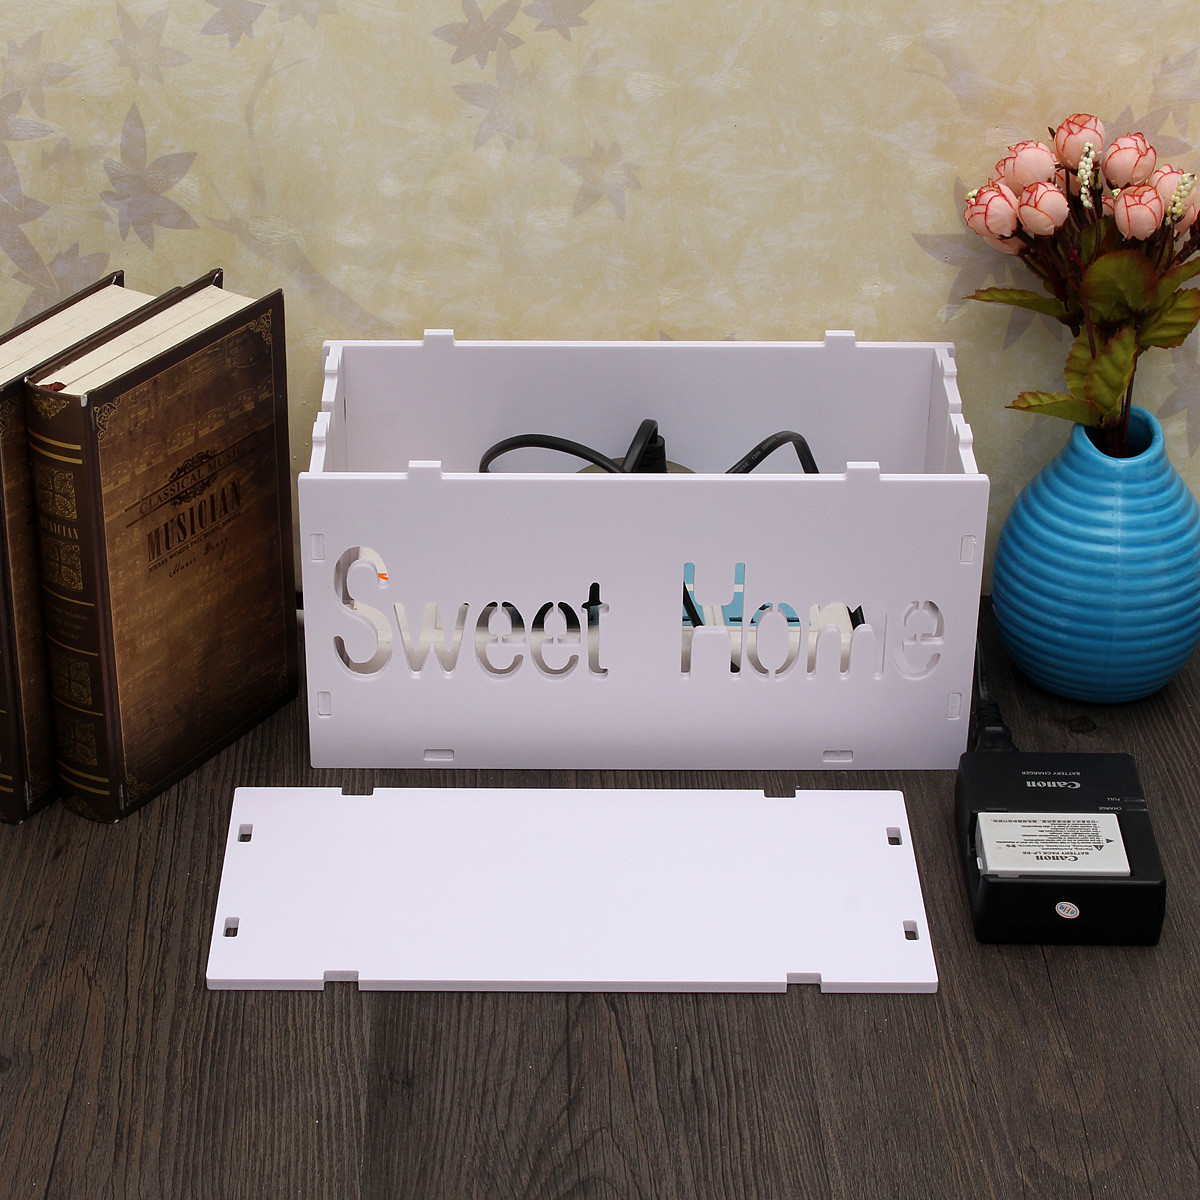 DIY Cable Management Box  Home Handmade DIY Cable Jewelry Storage Box Wire